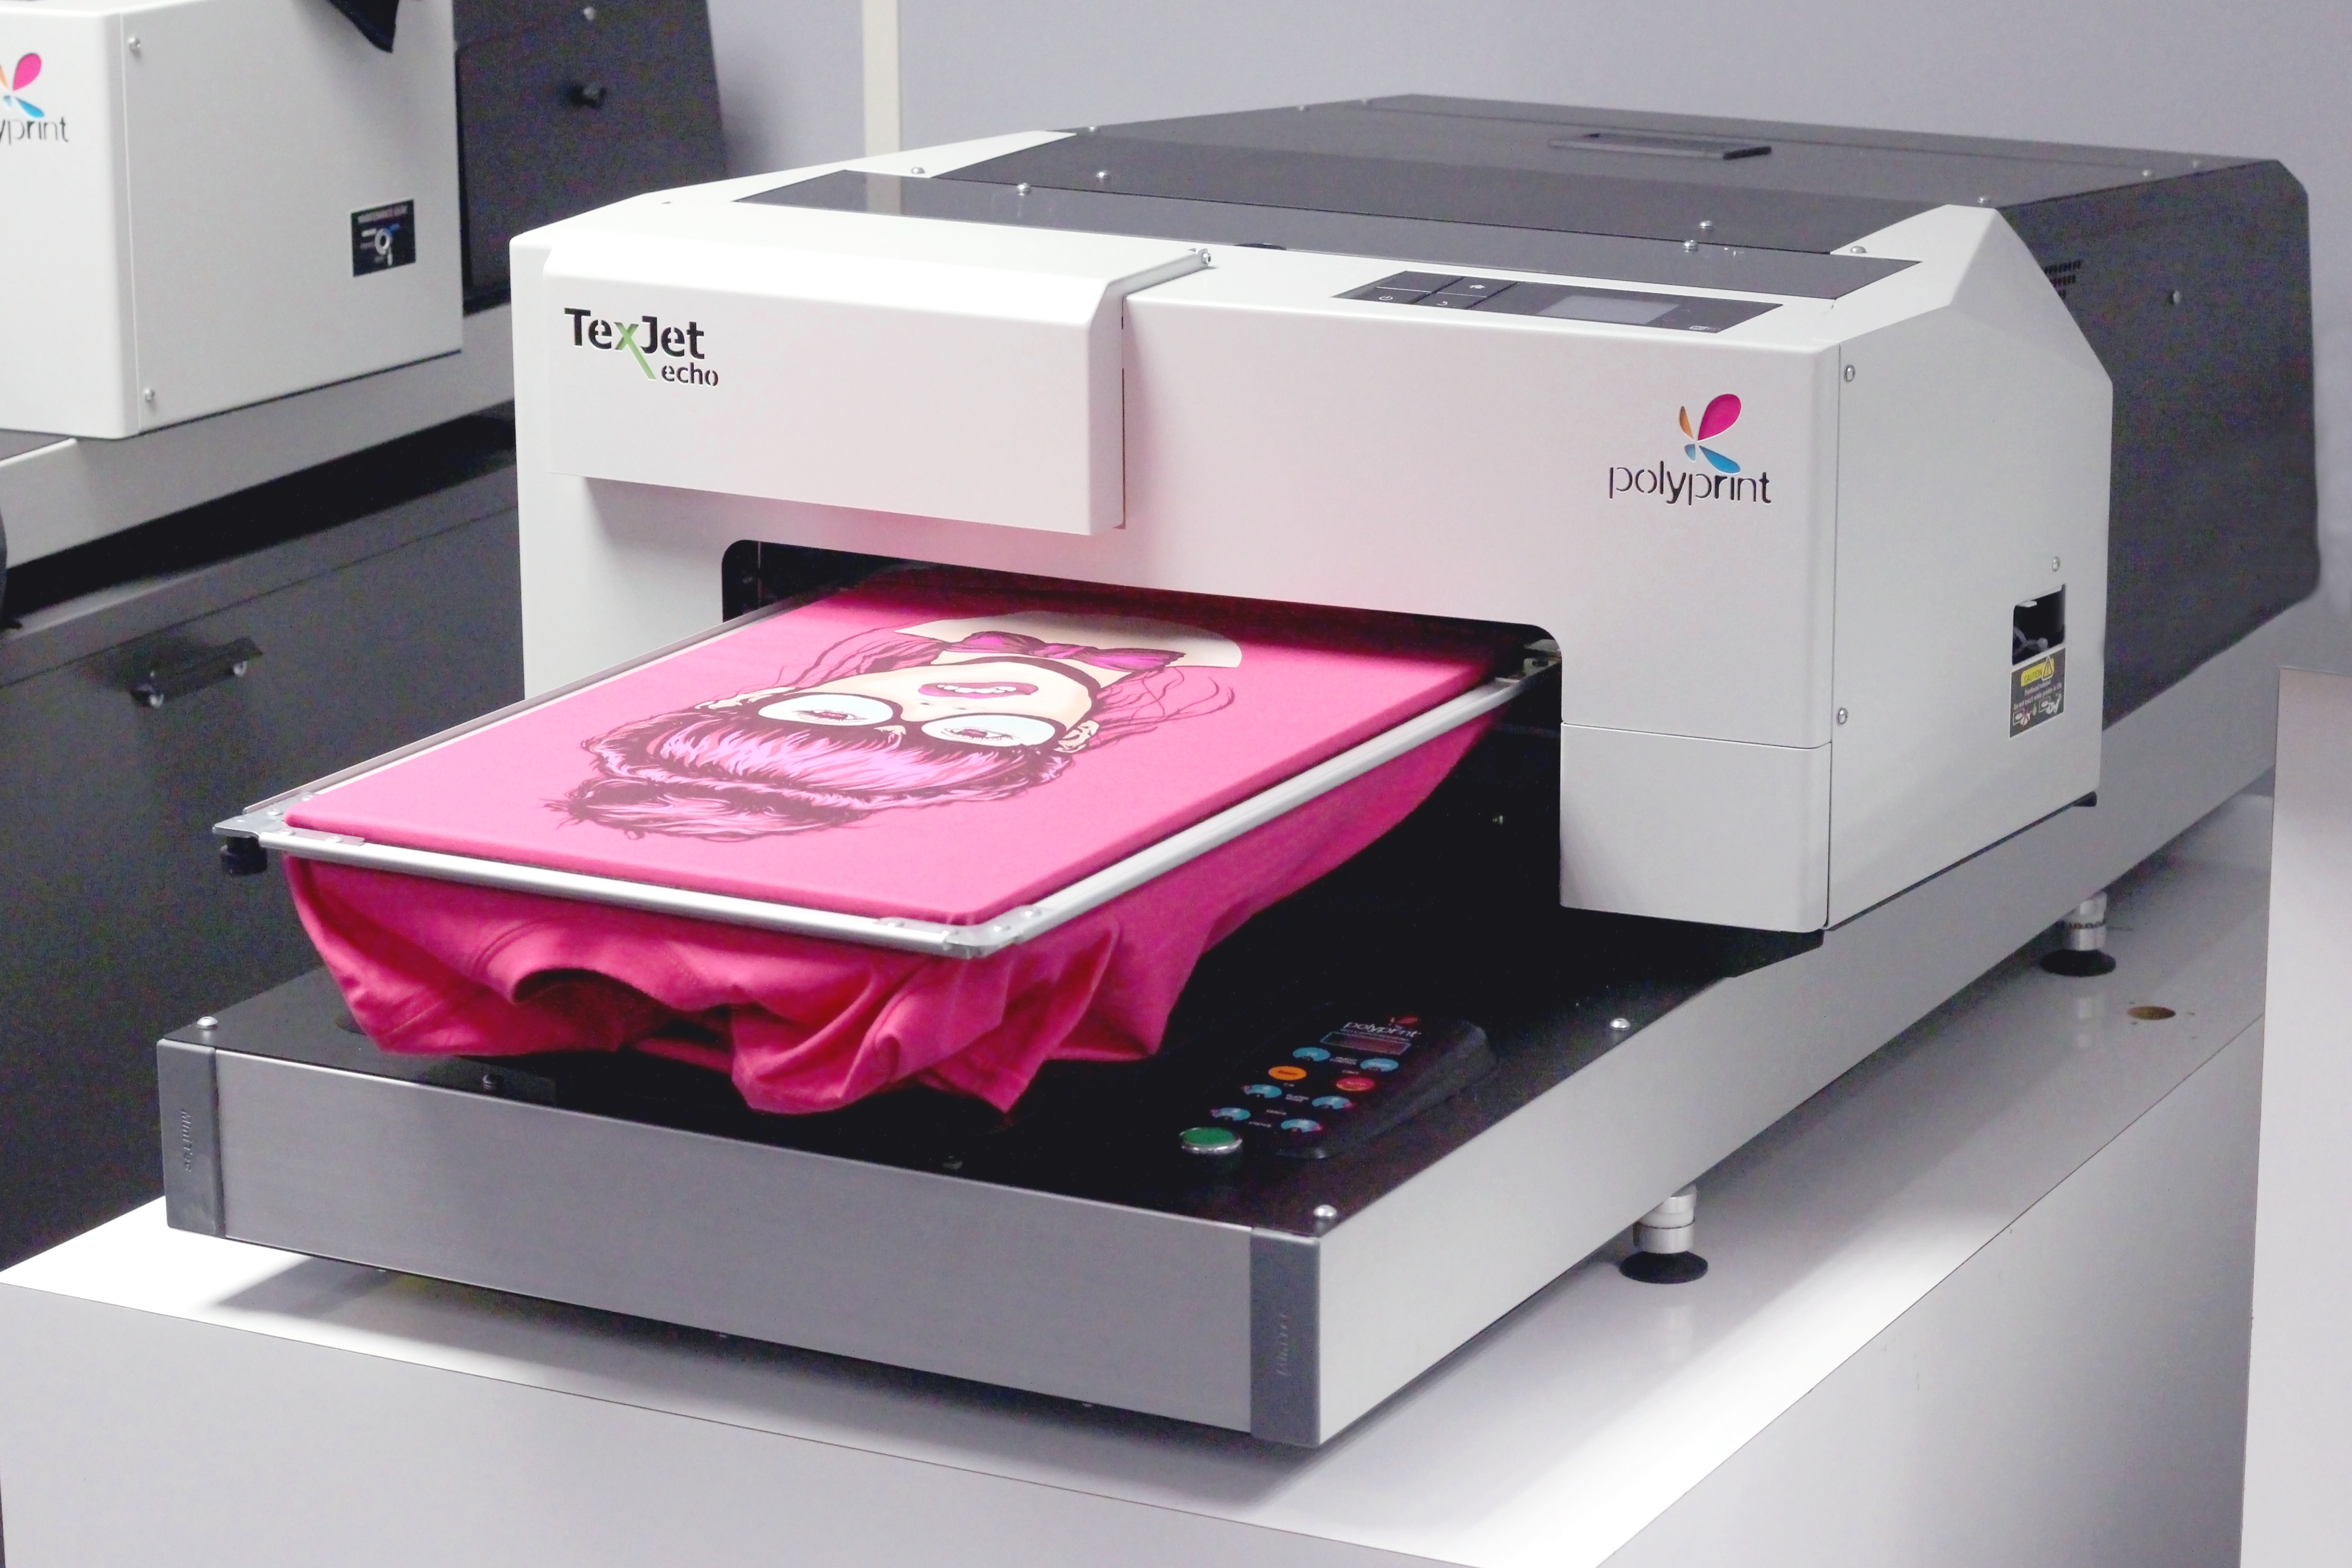 Texjet Echo2 Direct to Garment Printer with pink garment